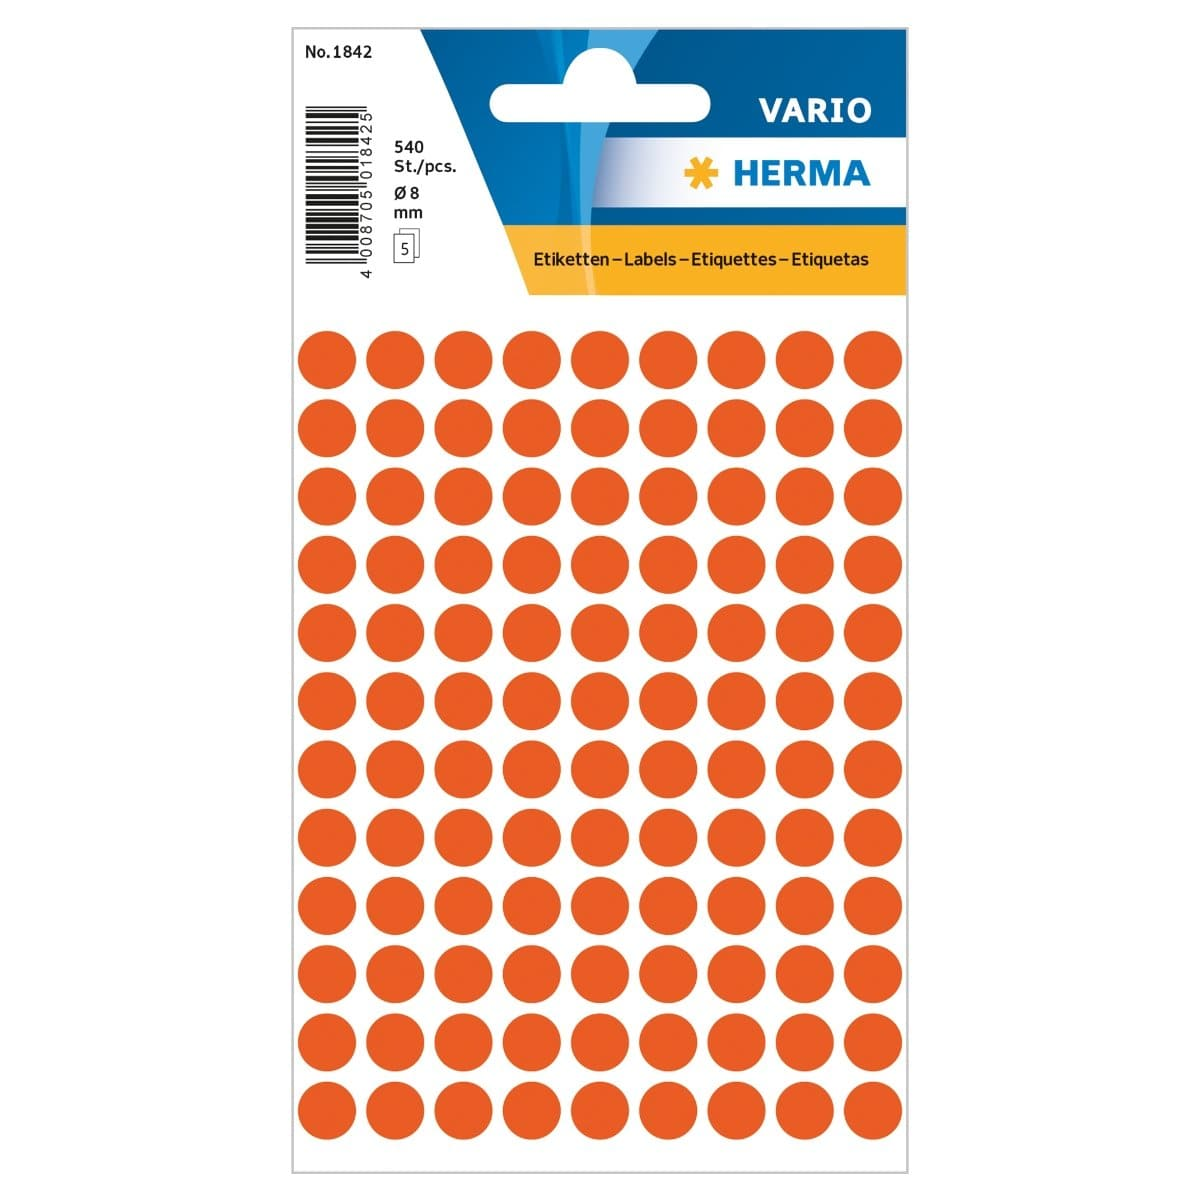 Herma Vario Sticker Color Dots, 8 mm, 540/pack, Red